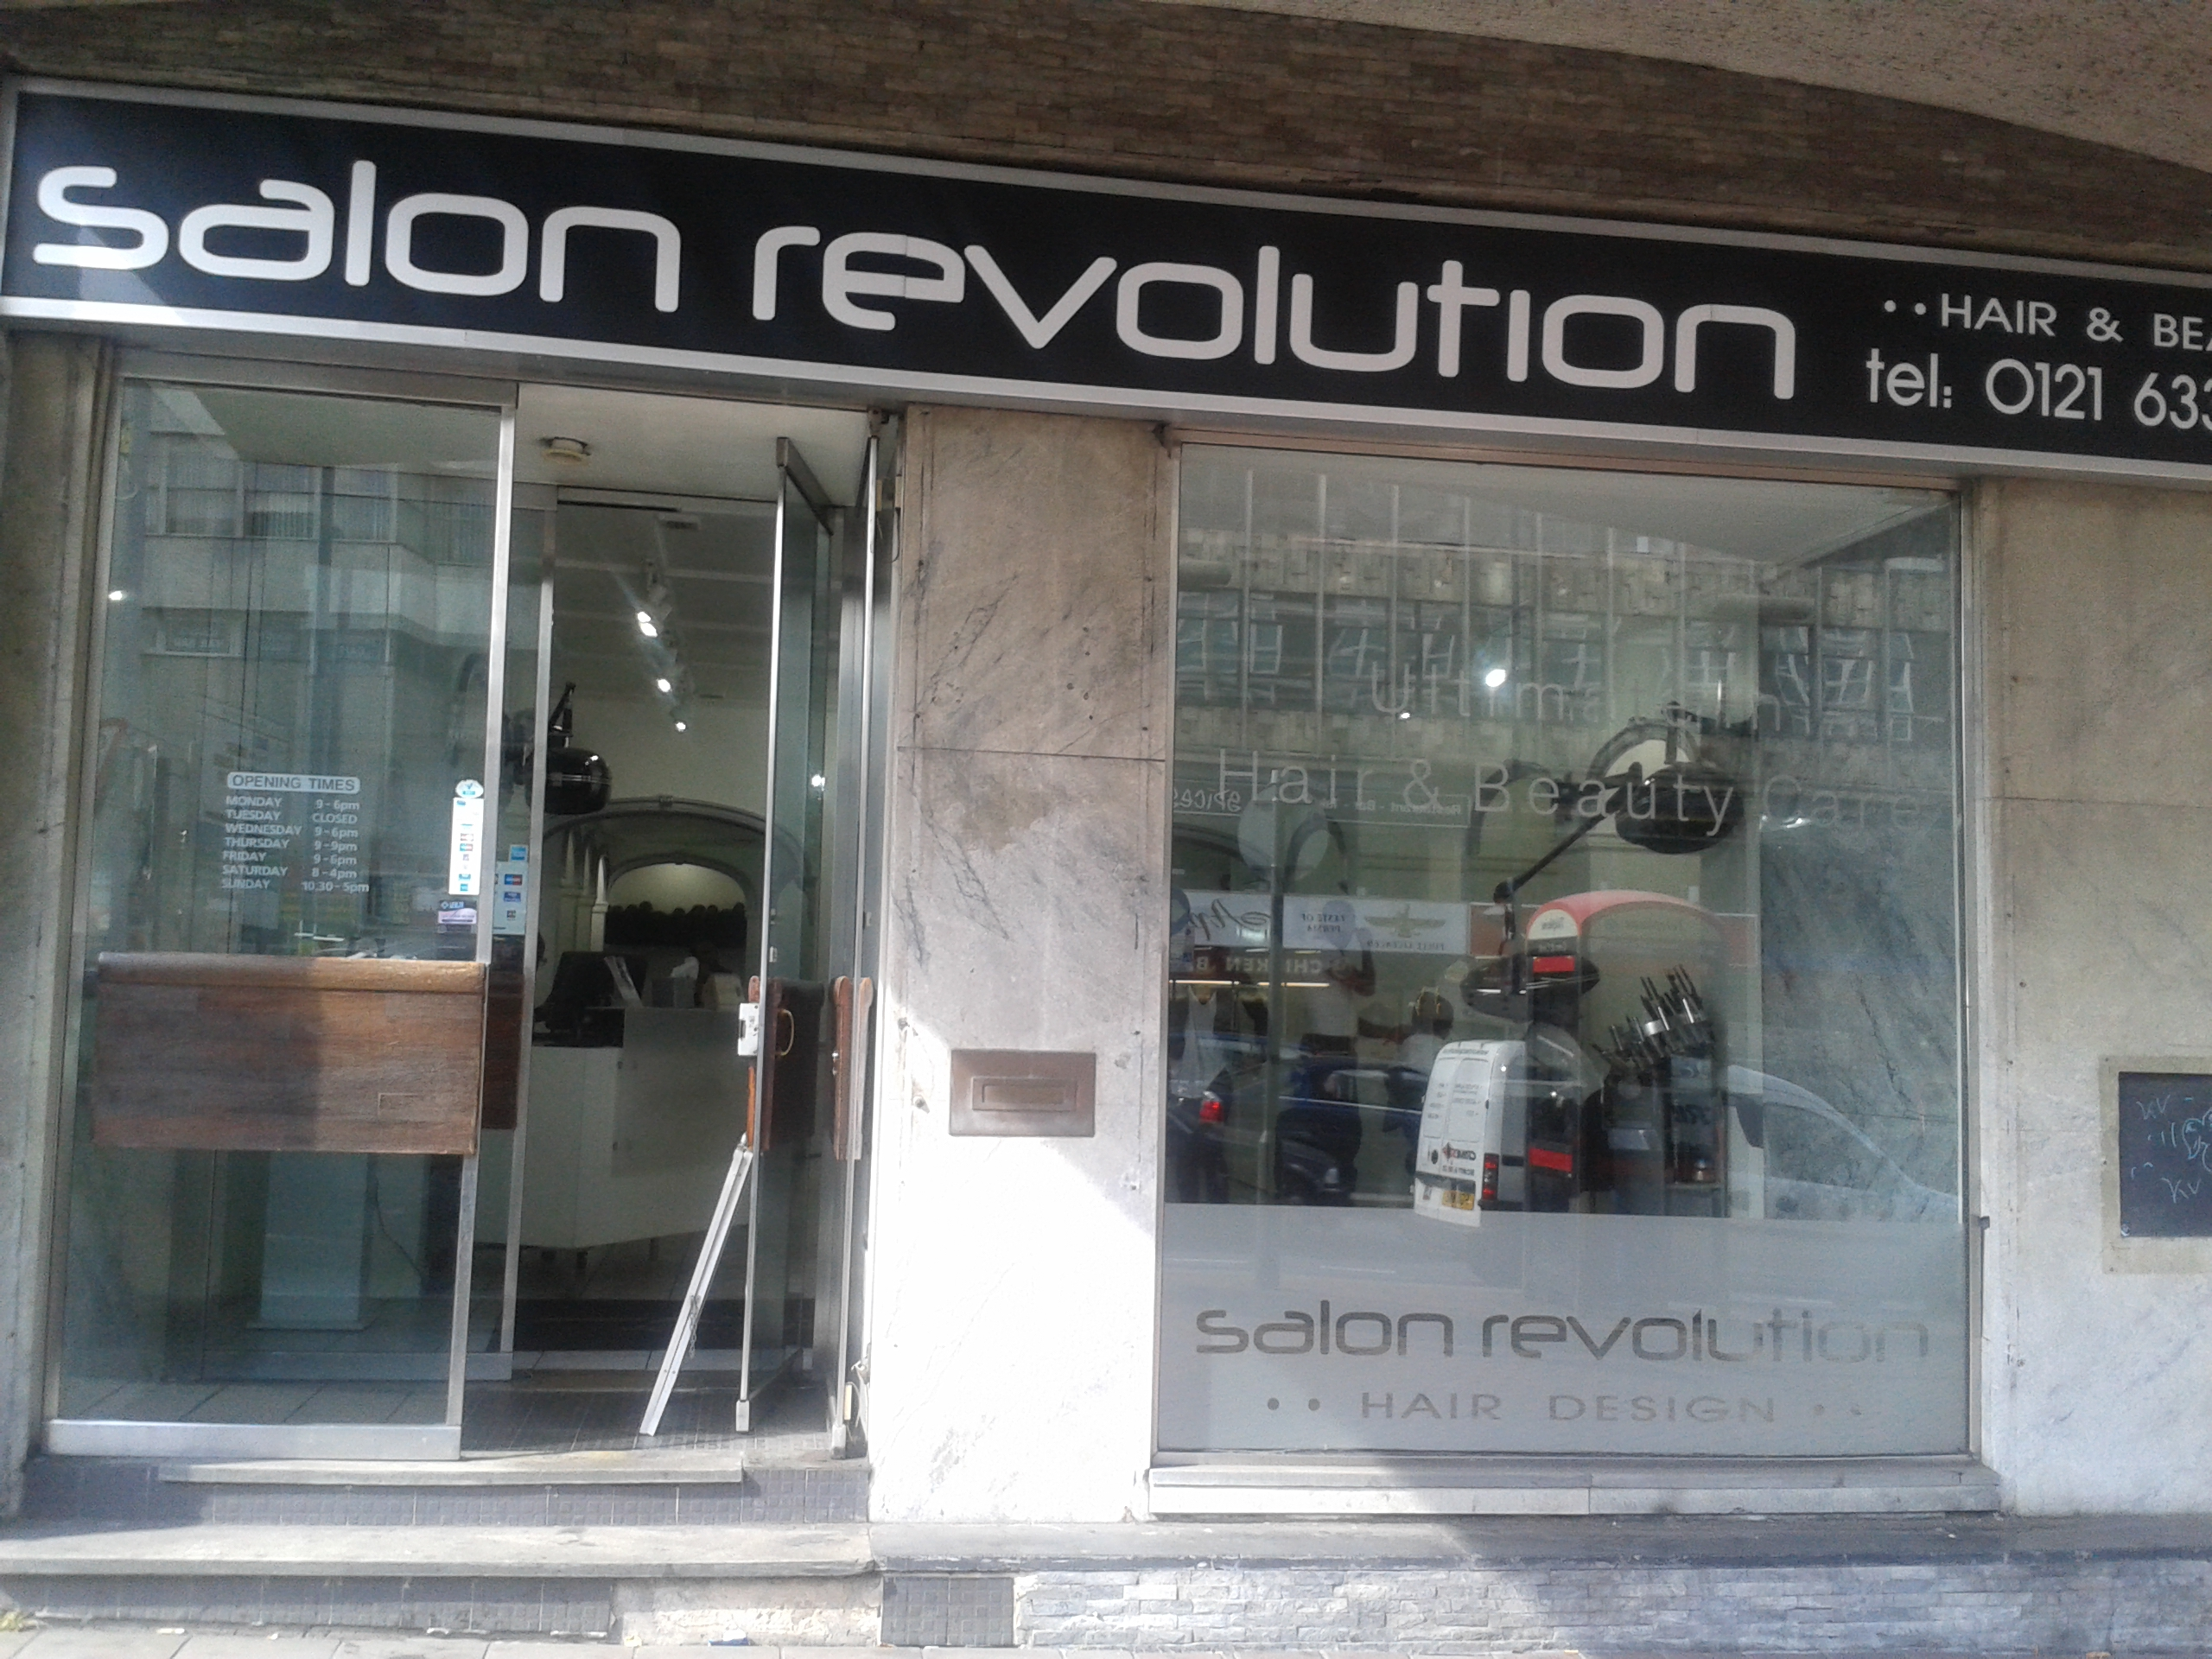 Salon revolution birmingham for Hair salon birmingham